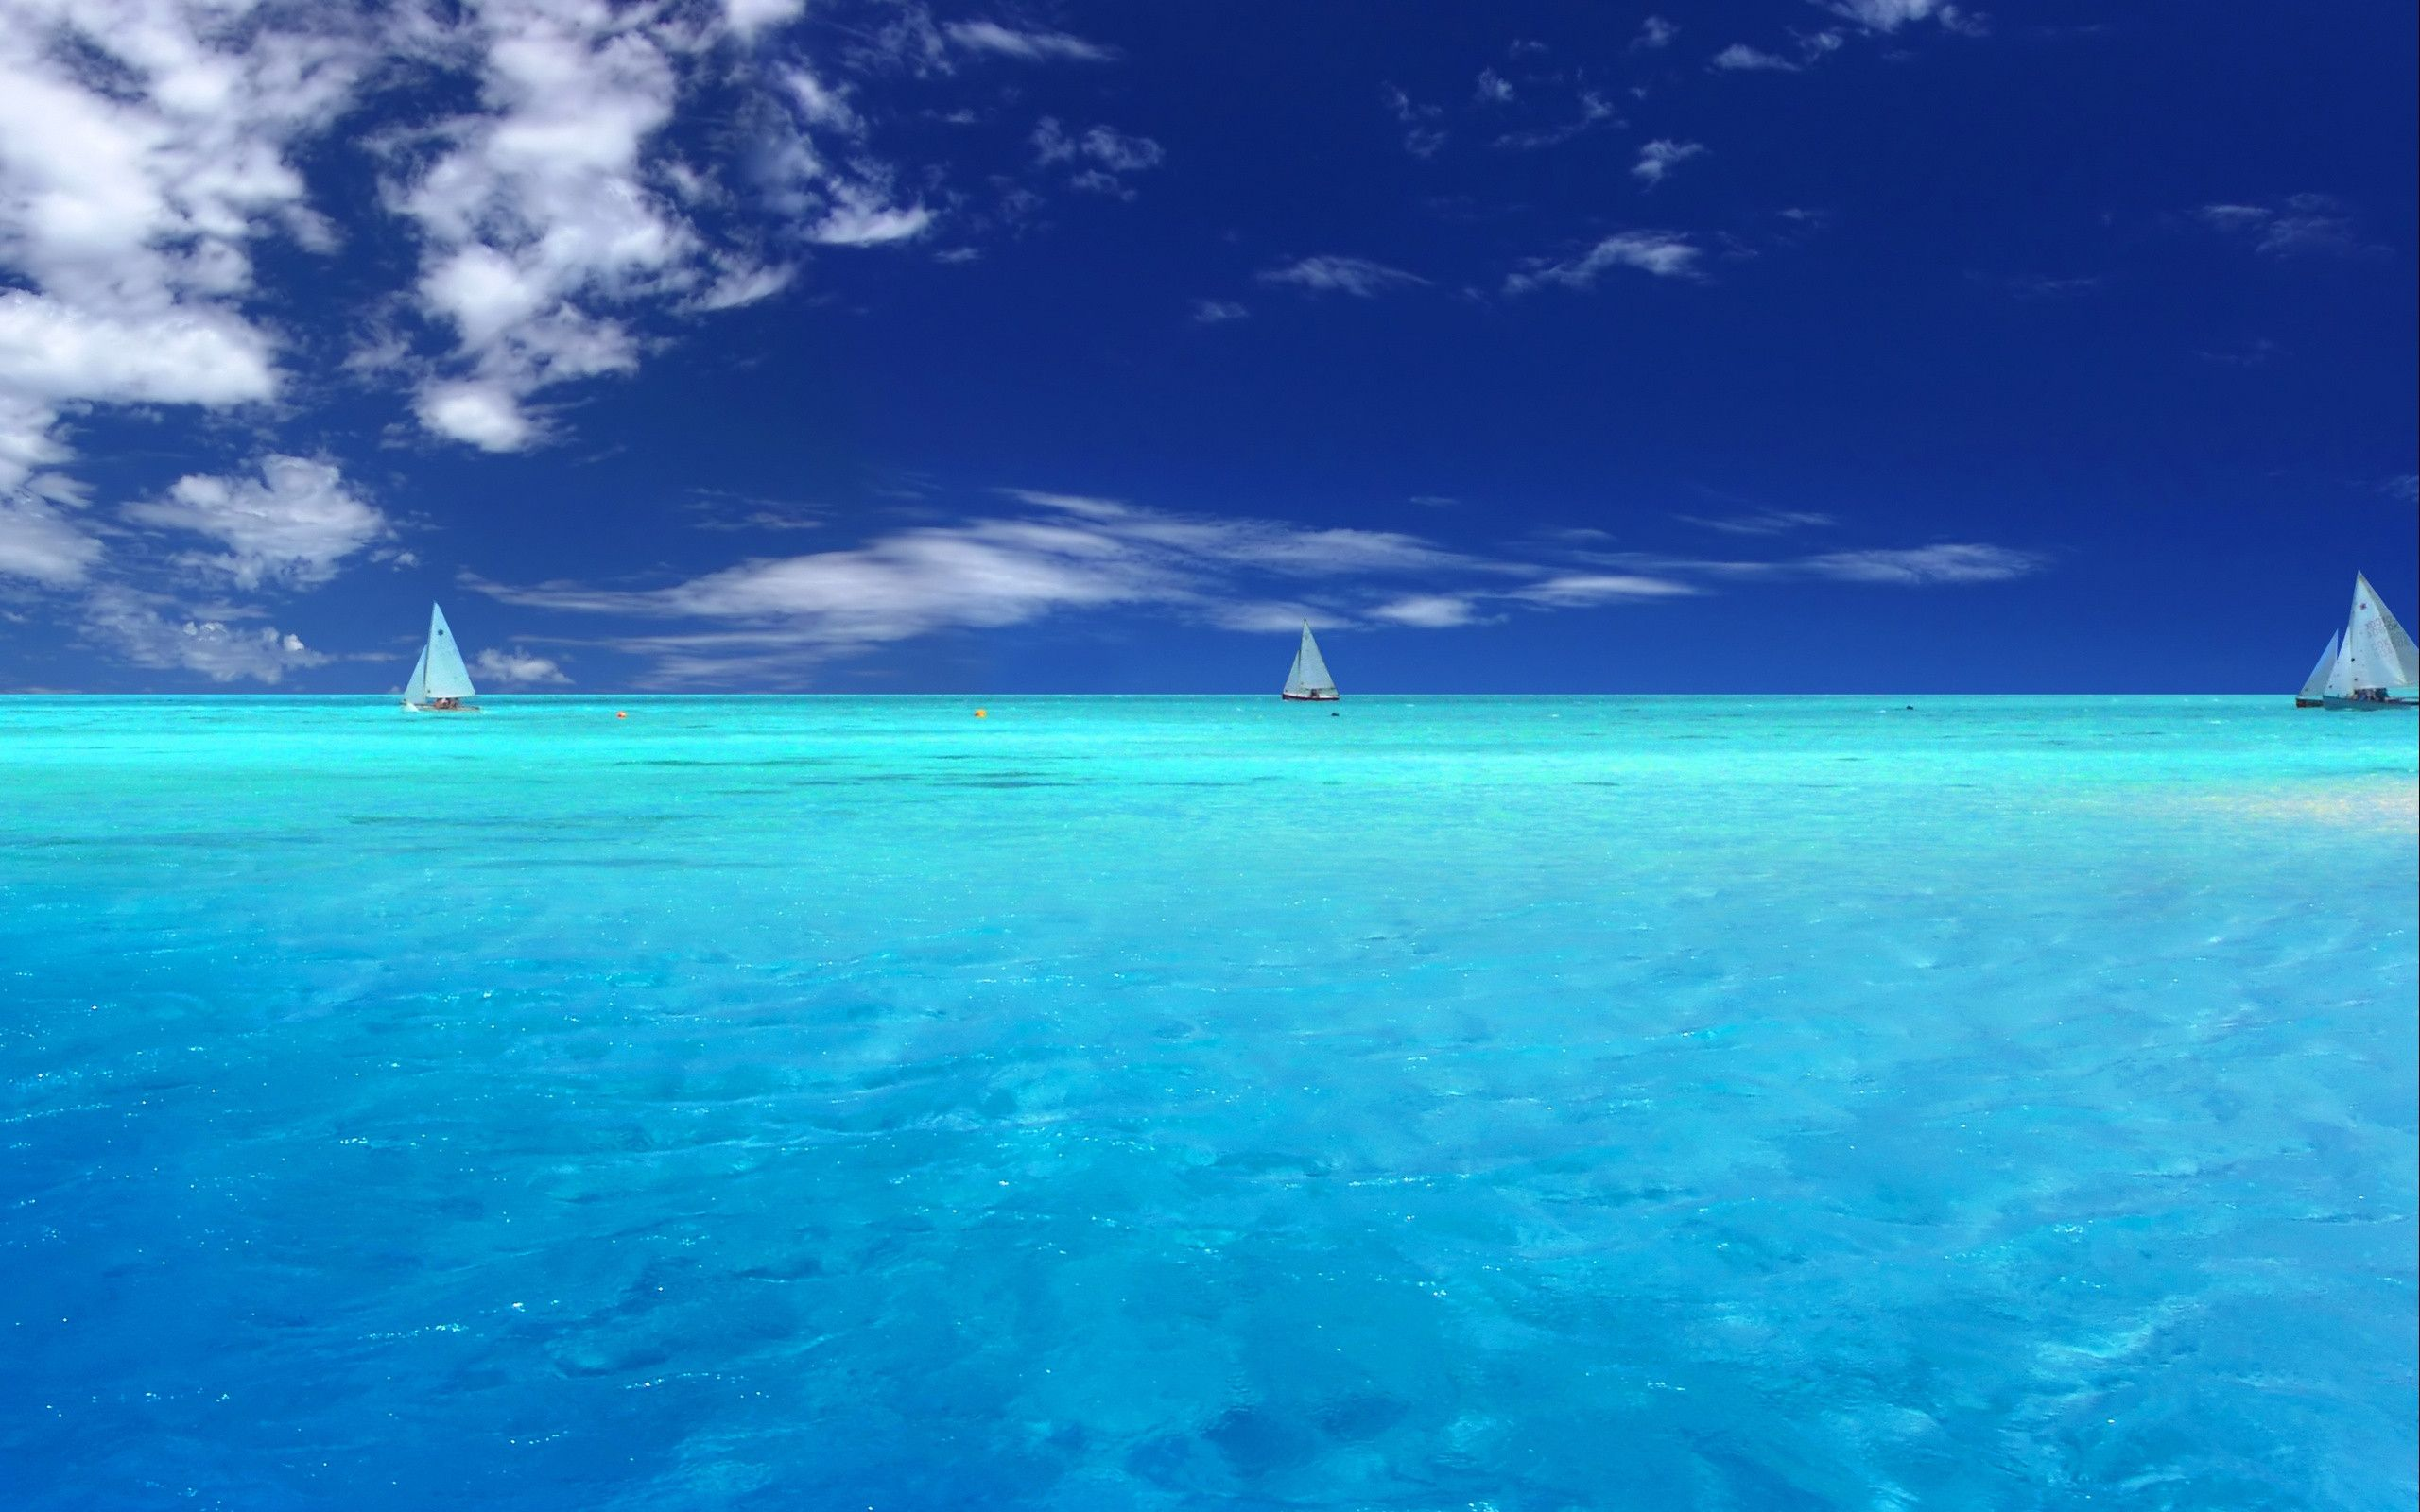 Desktop backgrounds hd ocean